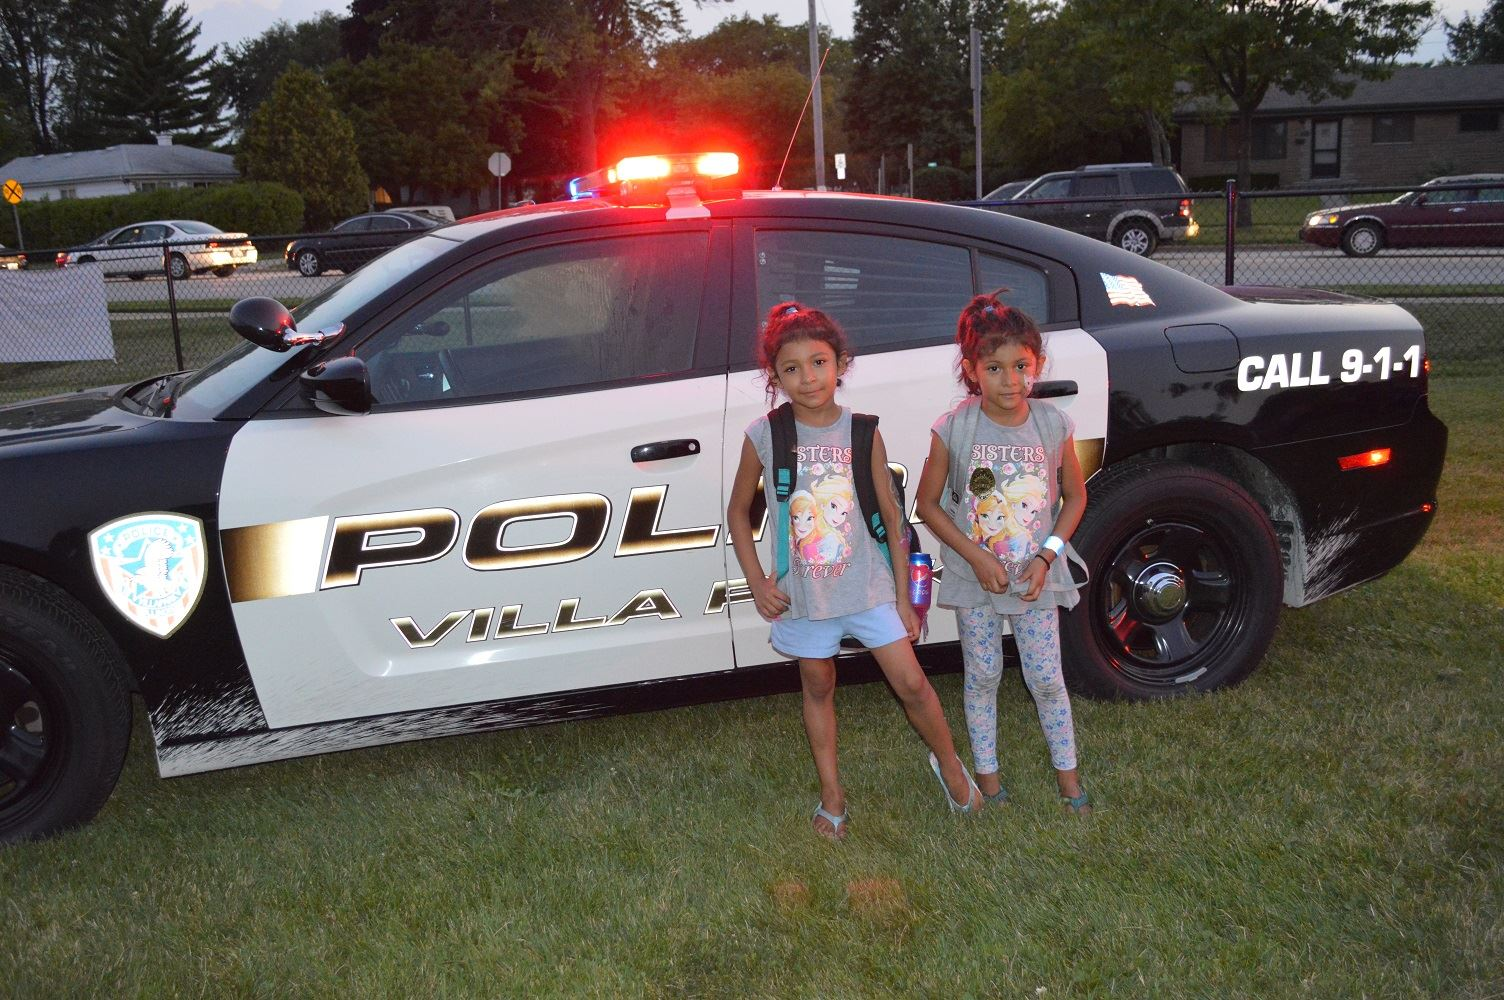 Two young girls pose for a photo in front of Villa Park Police car at a National Night Out event at the Iowa Community Center, Aug. 2.